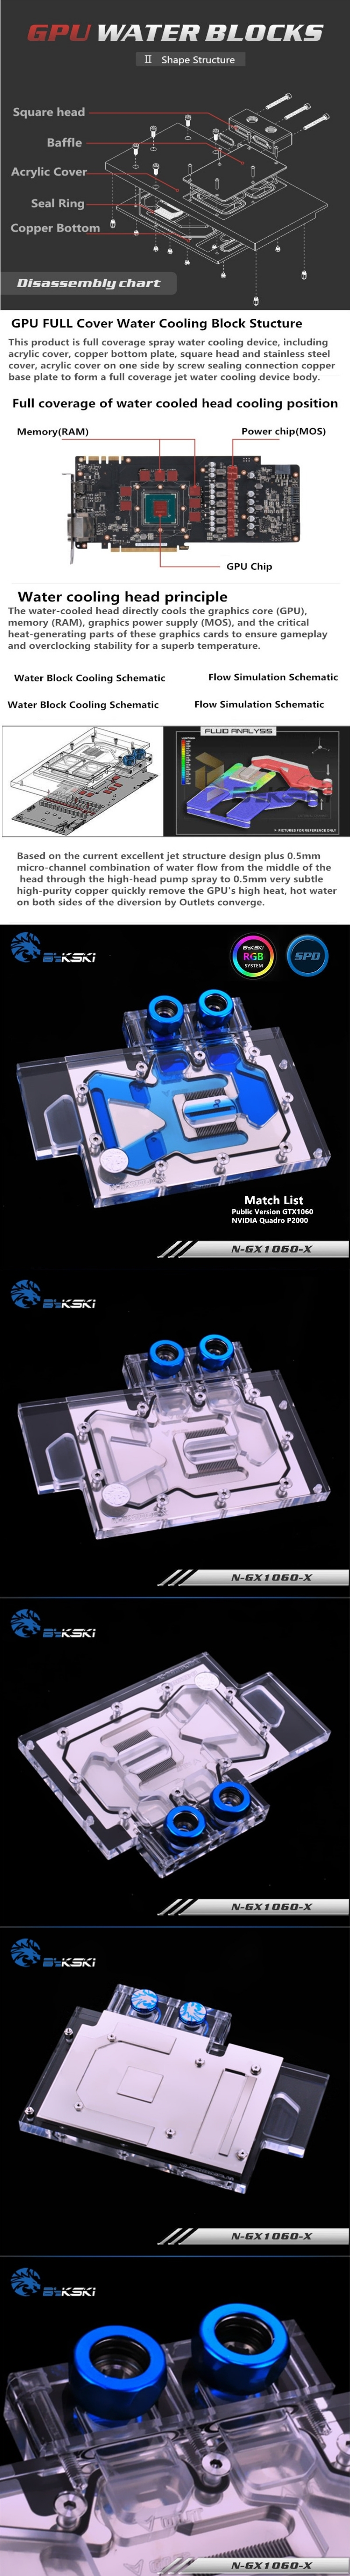 A large marketing image providing additional information about the product Bykski GTX1060-X Full Cover RBW GPU Waterblock - Additional alt info not provided